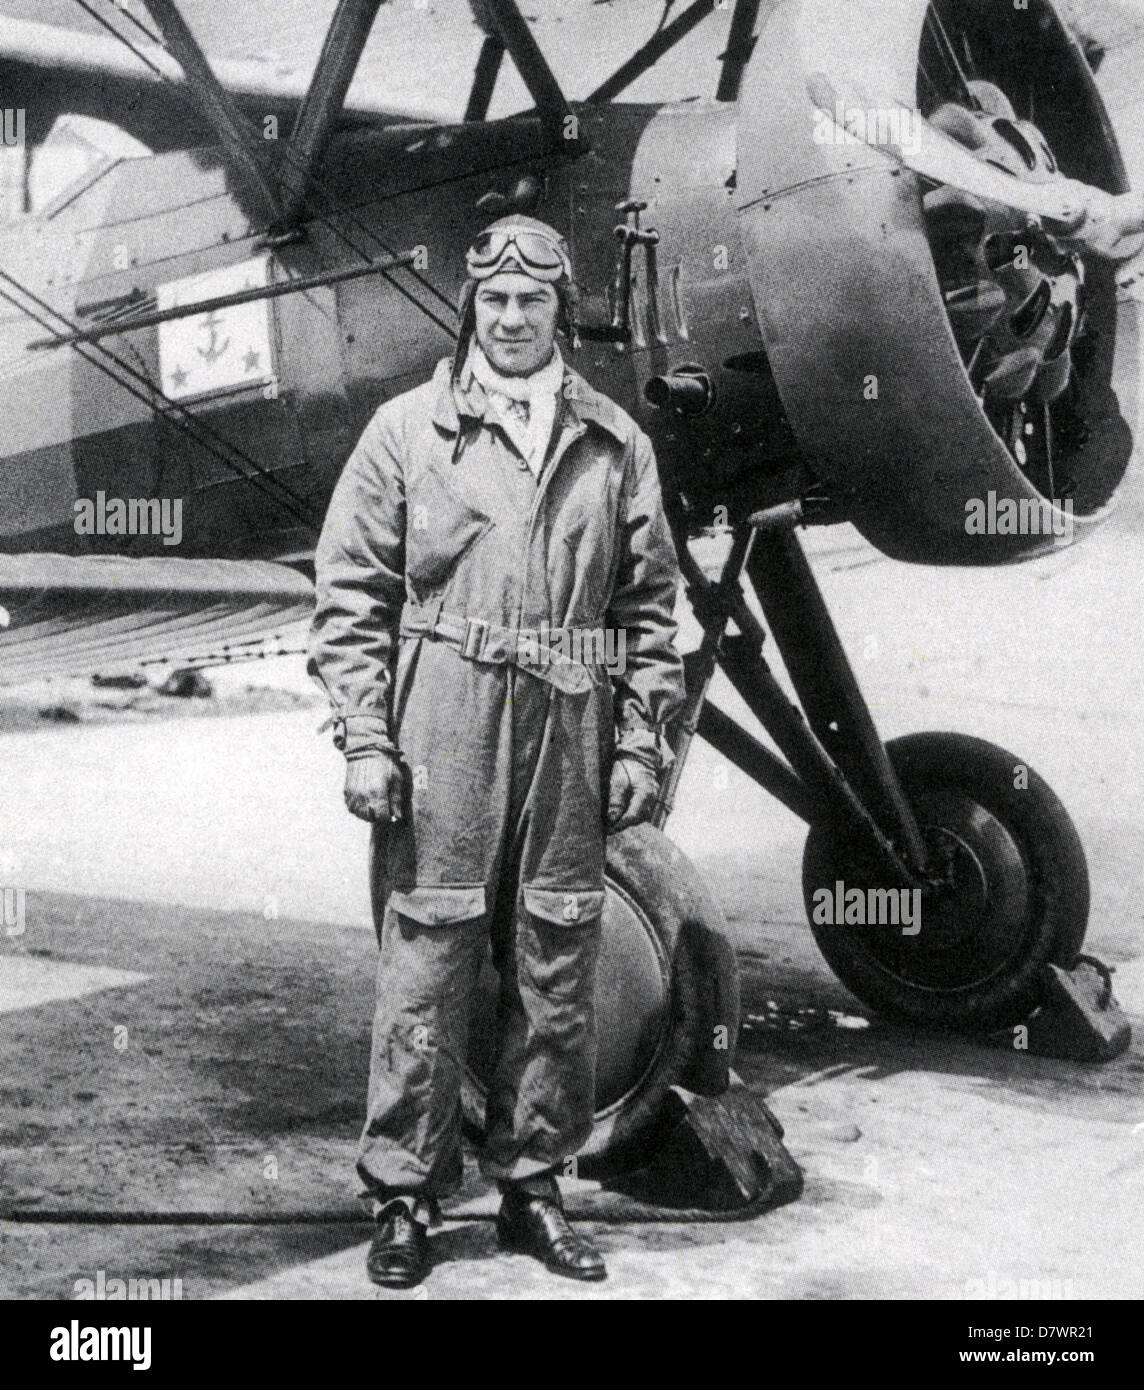 DAVID SINTON INGALLS (1899-1985) US WW1 flying ace here as Assistant Secretary of the US Navy about 1930 - Stock Image